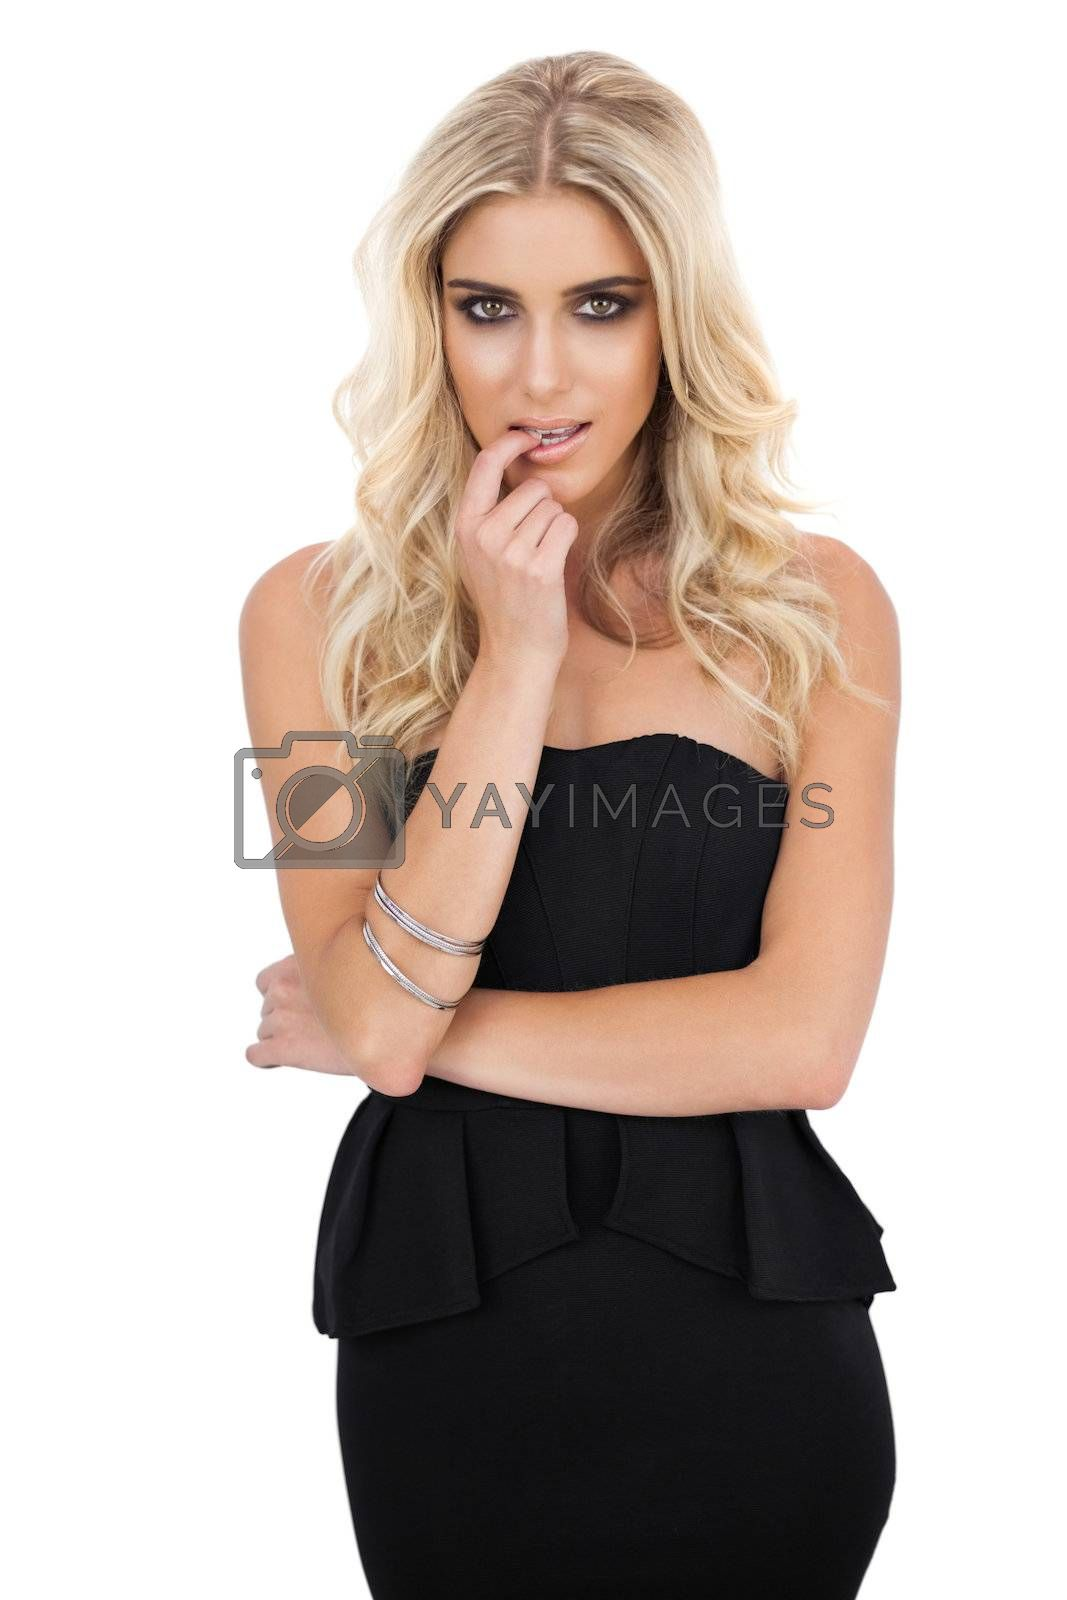 Thoughtful blonde model in black dress posing a finger in the mouth by Wavebreakmedia